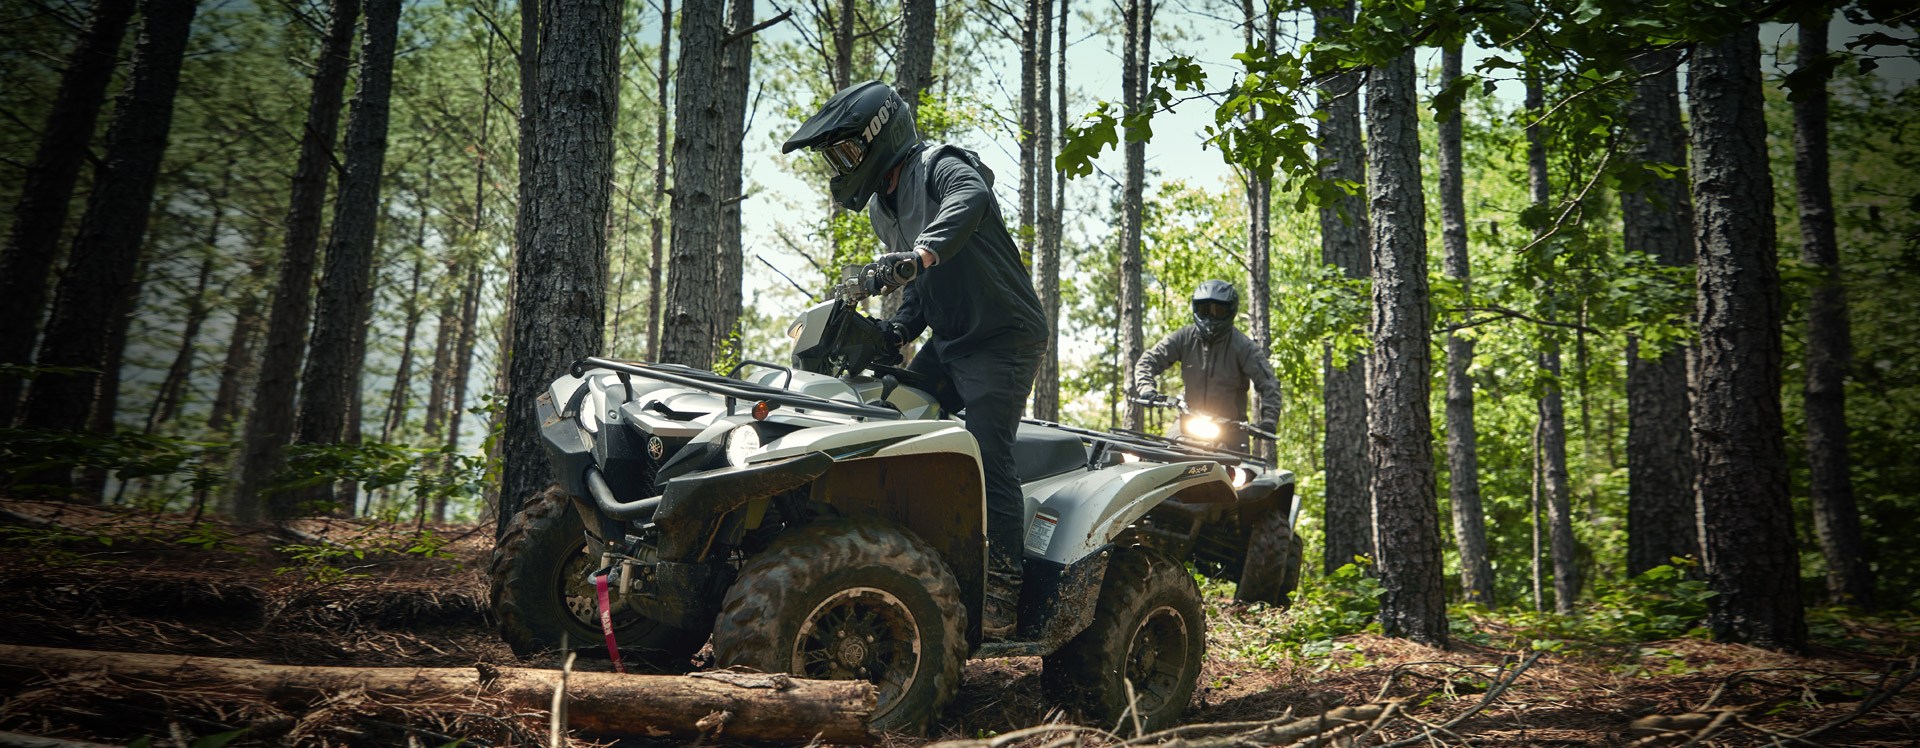 2020 Yamaha Grizzly-Eps-Se